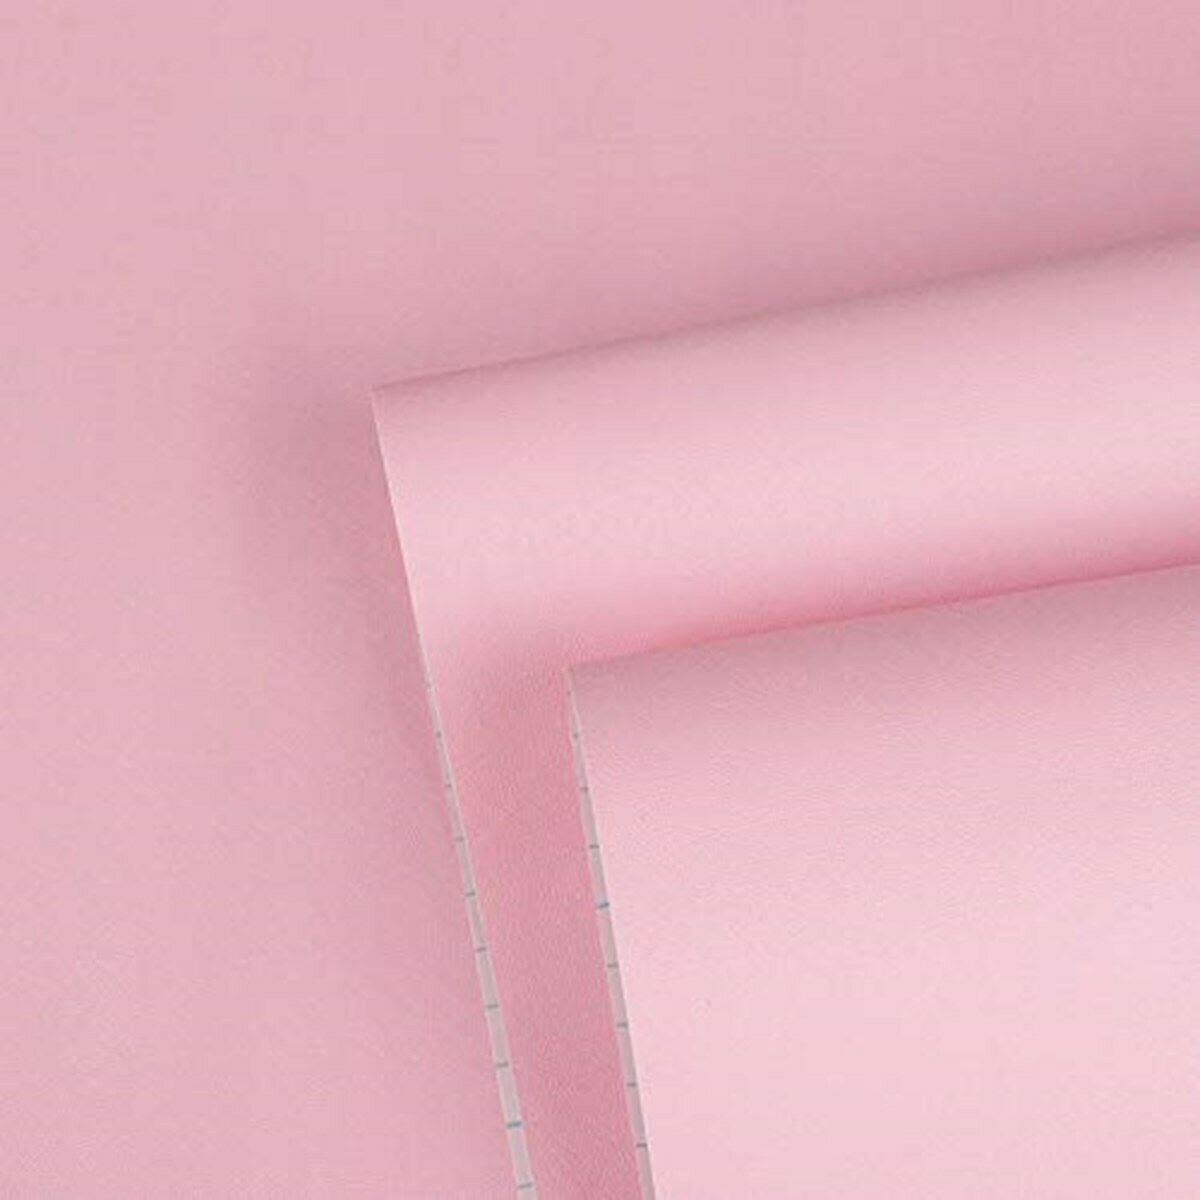 Cocowind Pink Contact Paper Pink Wallpaper Solid Color Peel And Stick Wallpaper Bathtubs Idea Pink Wallpaper Peel And Stick Wallpaper Pink Wallpaper Solid